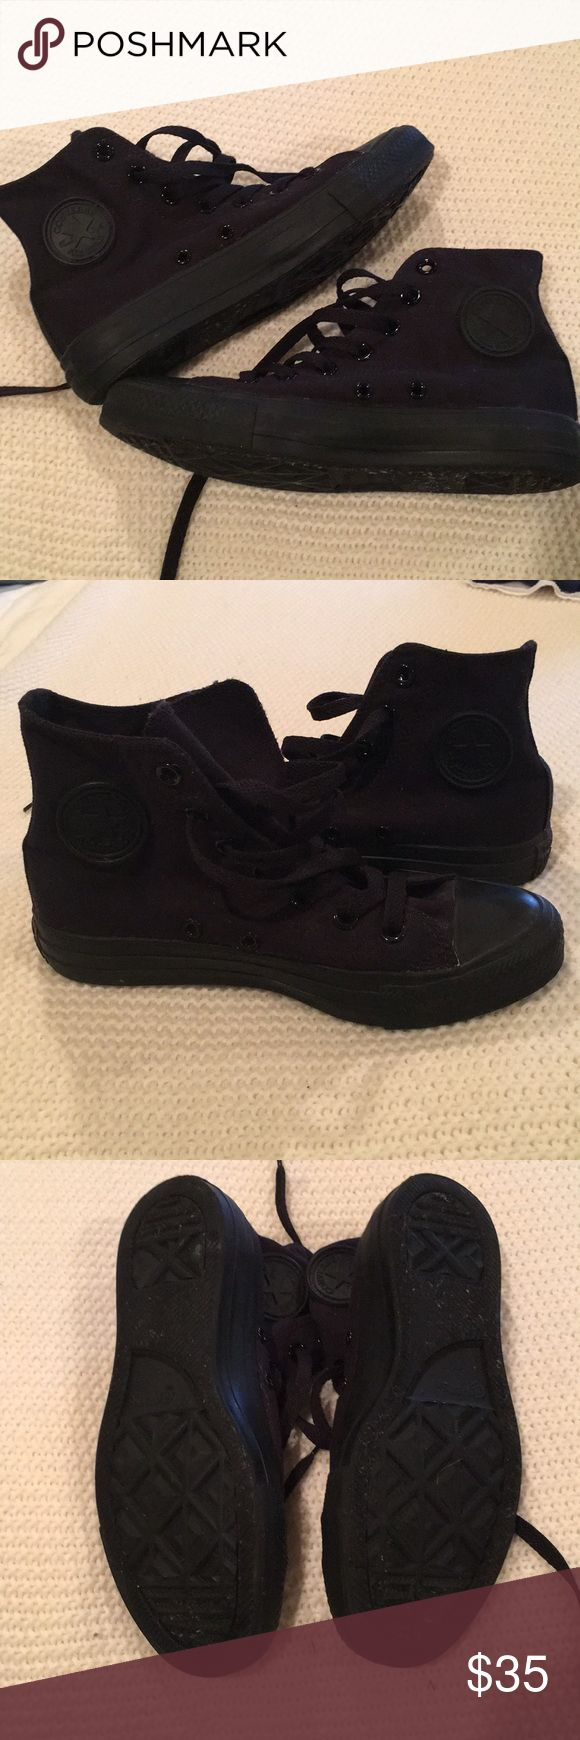 🖤Converse🖤 Black High Top Sneakers All black high top converse sneakers. These were worn one time !!! Like new condition. Great for leggings or jeans :) women's 6 or men's 4 could be unisex. Converse Shoes Sneakers